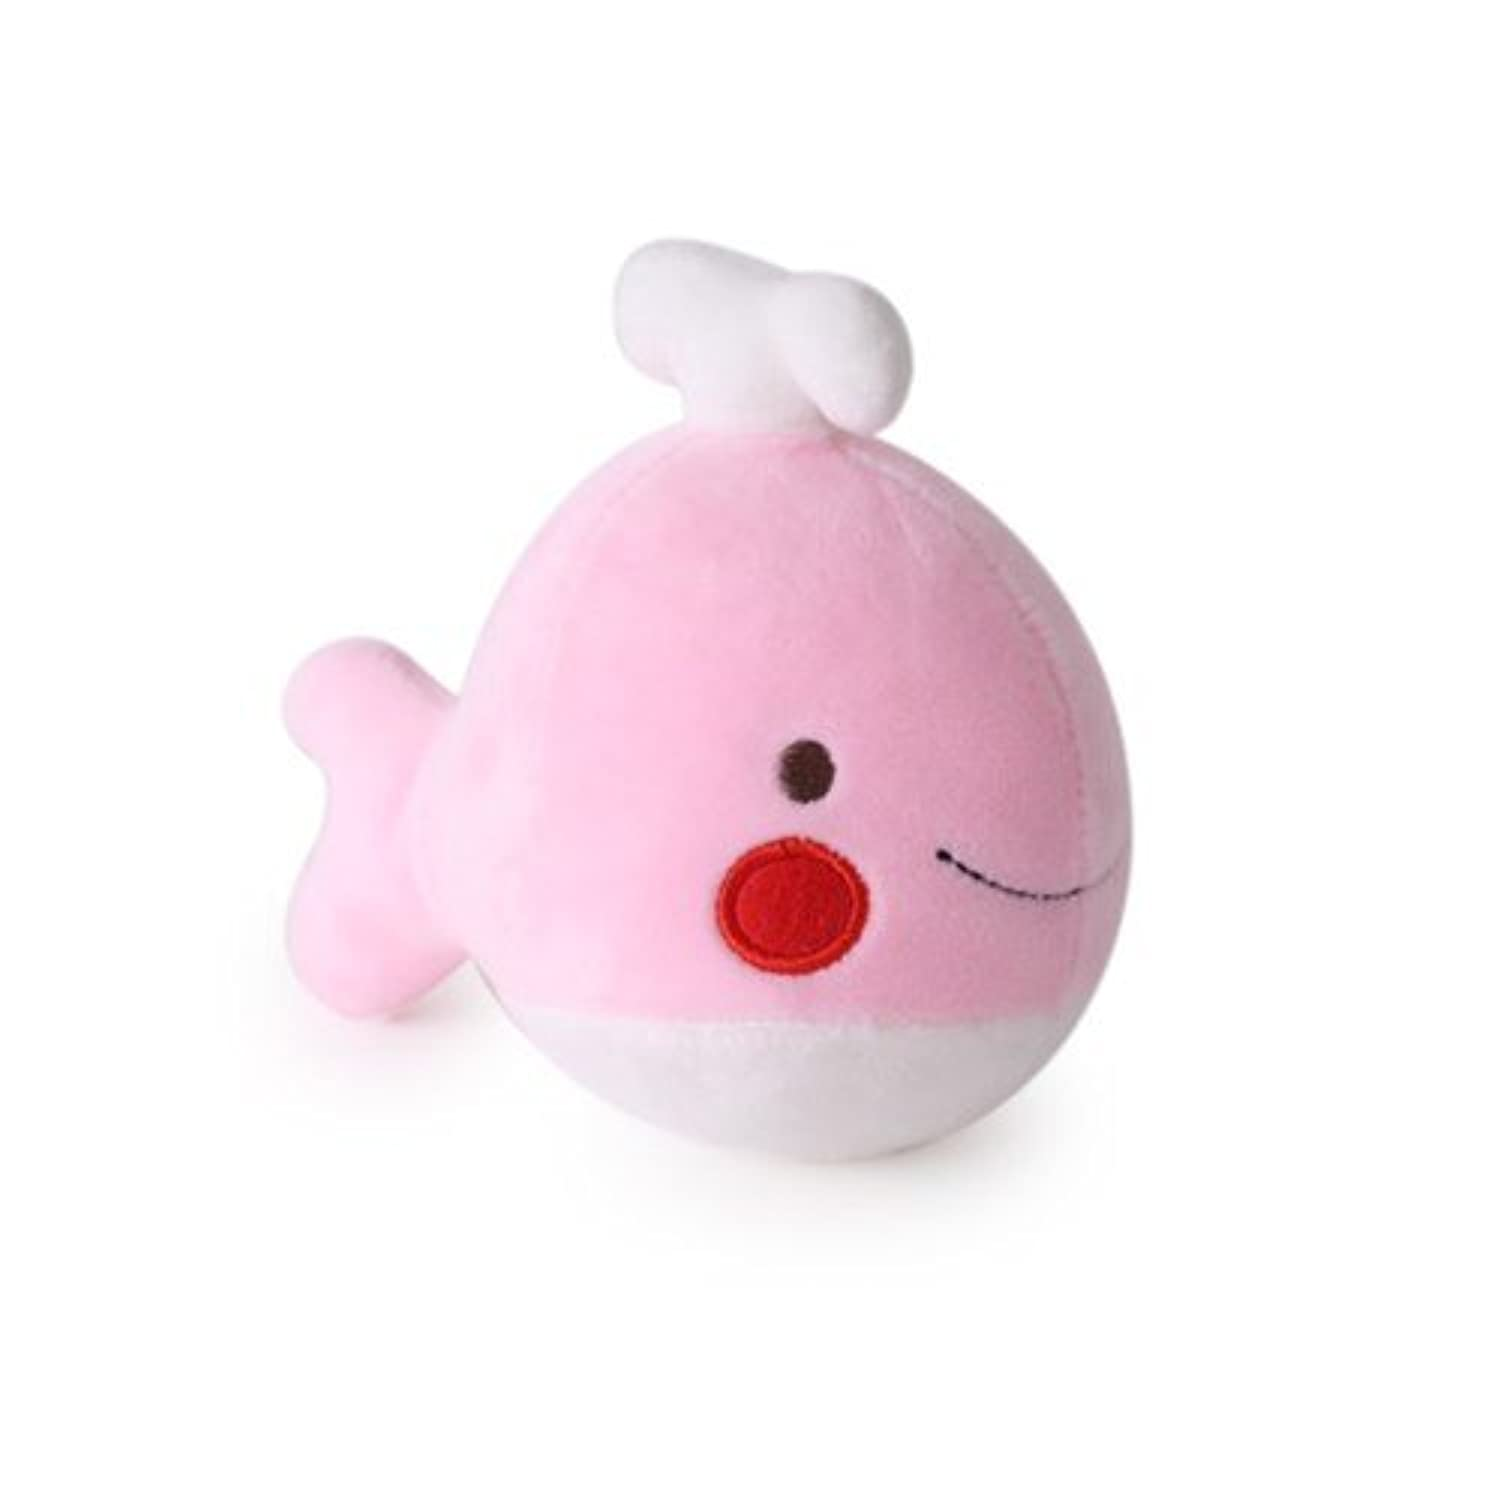 Character Cushion Toy - whale Rag Doll 16cm Pink